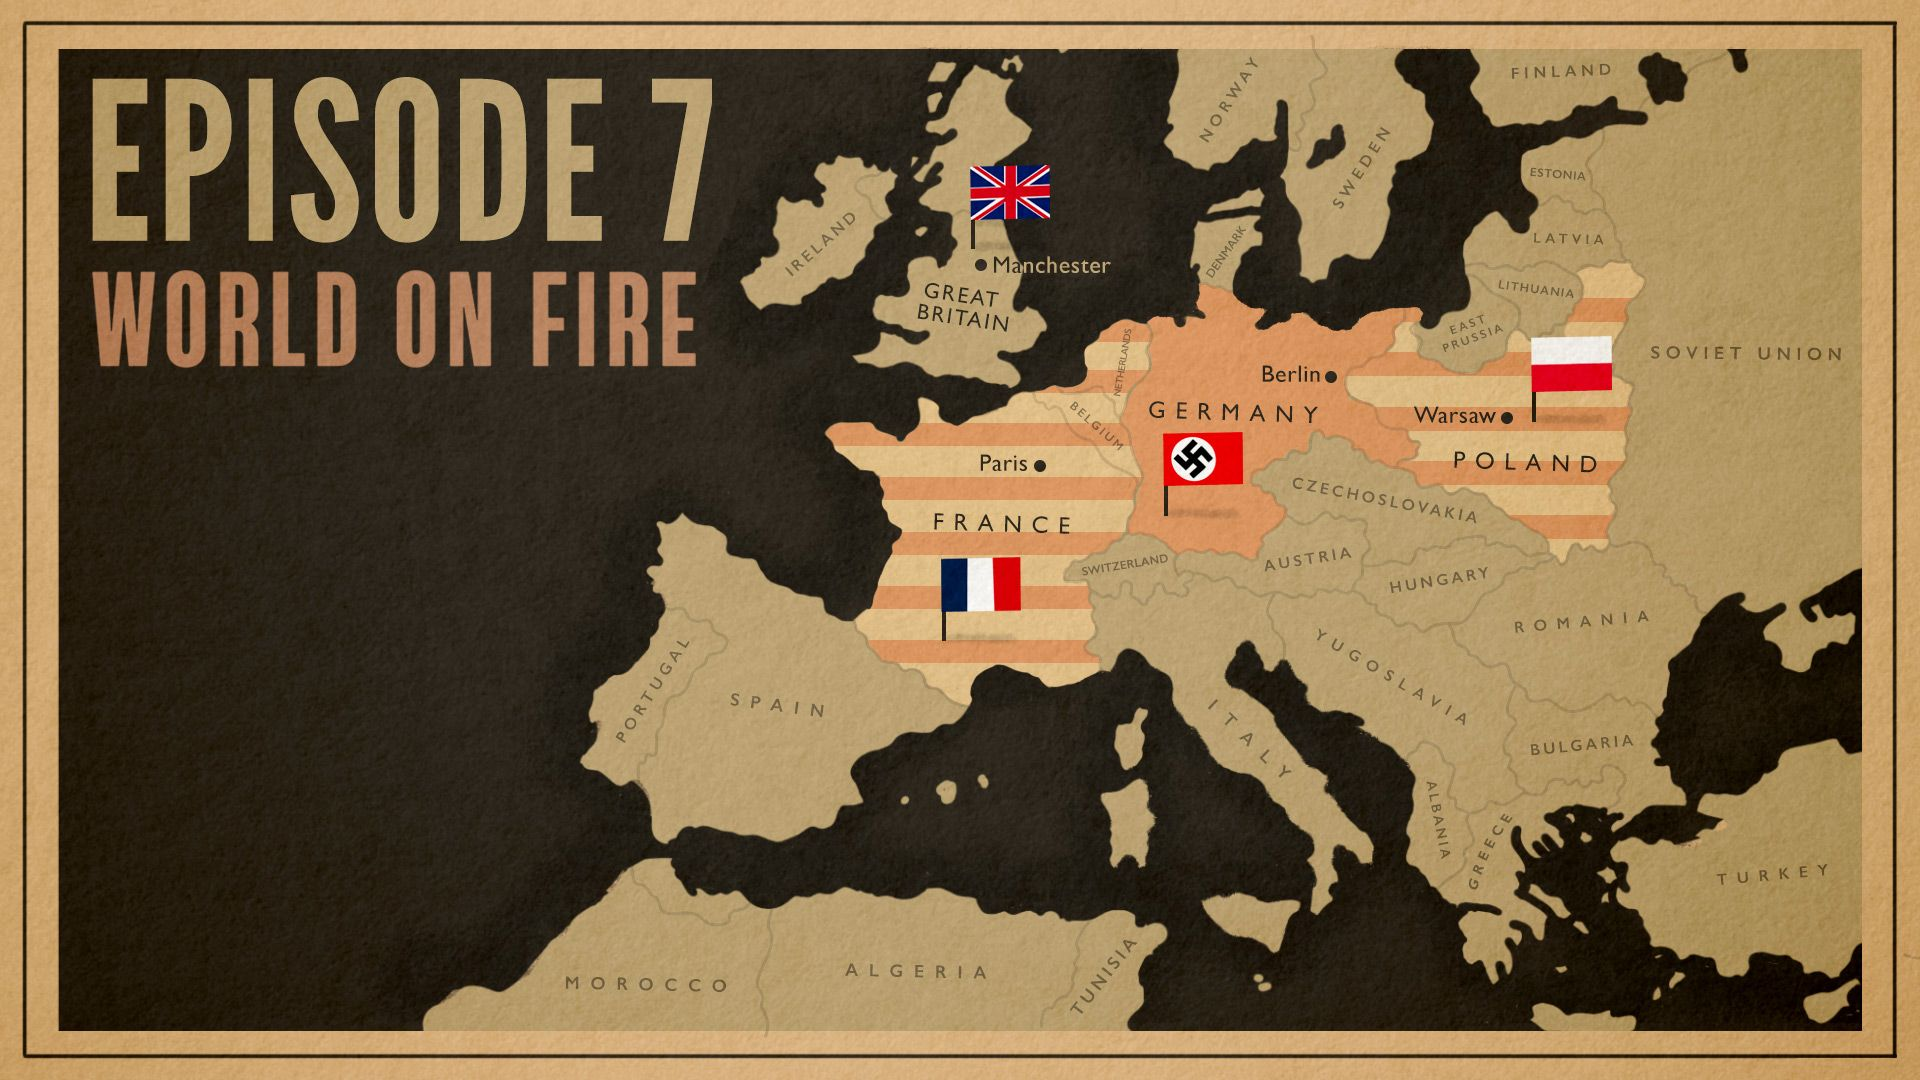 Map of Europe in 1940 as seen in World on Fire, Season 1, Episode 7 on Masterpiece on PBS